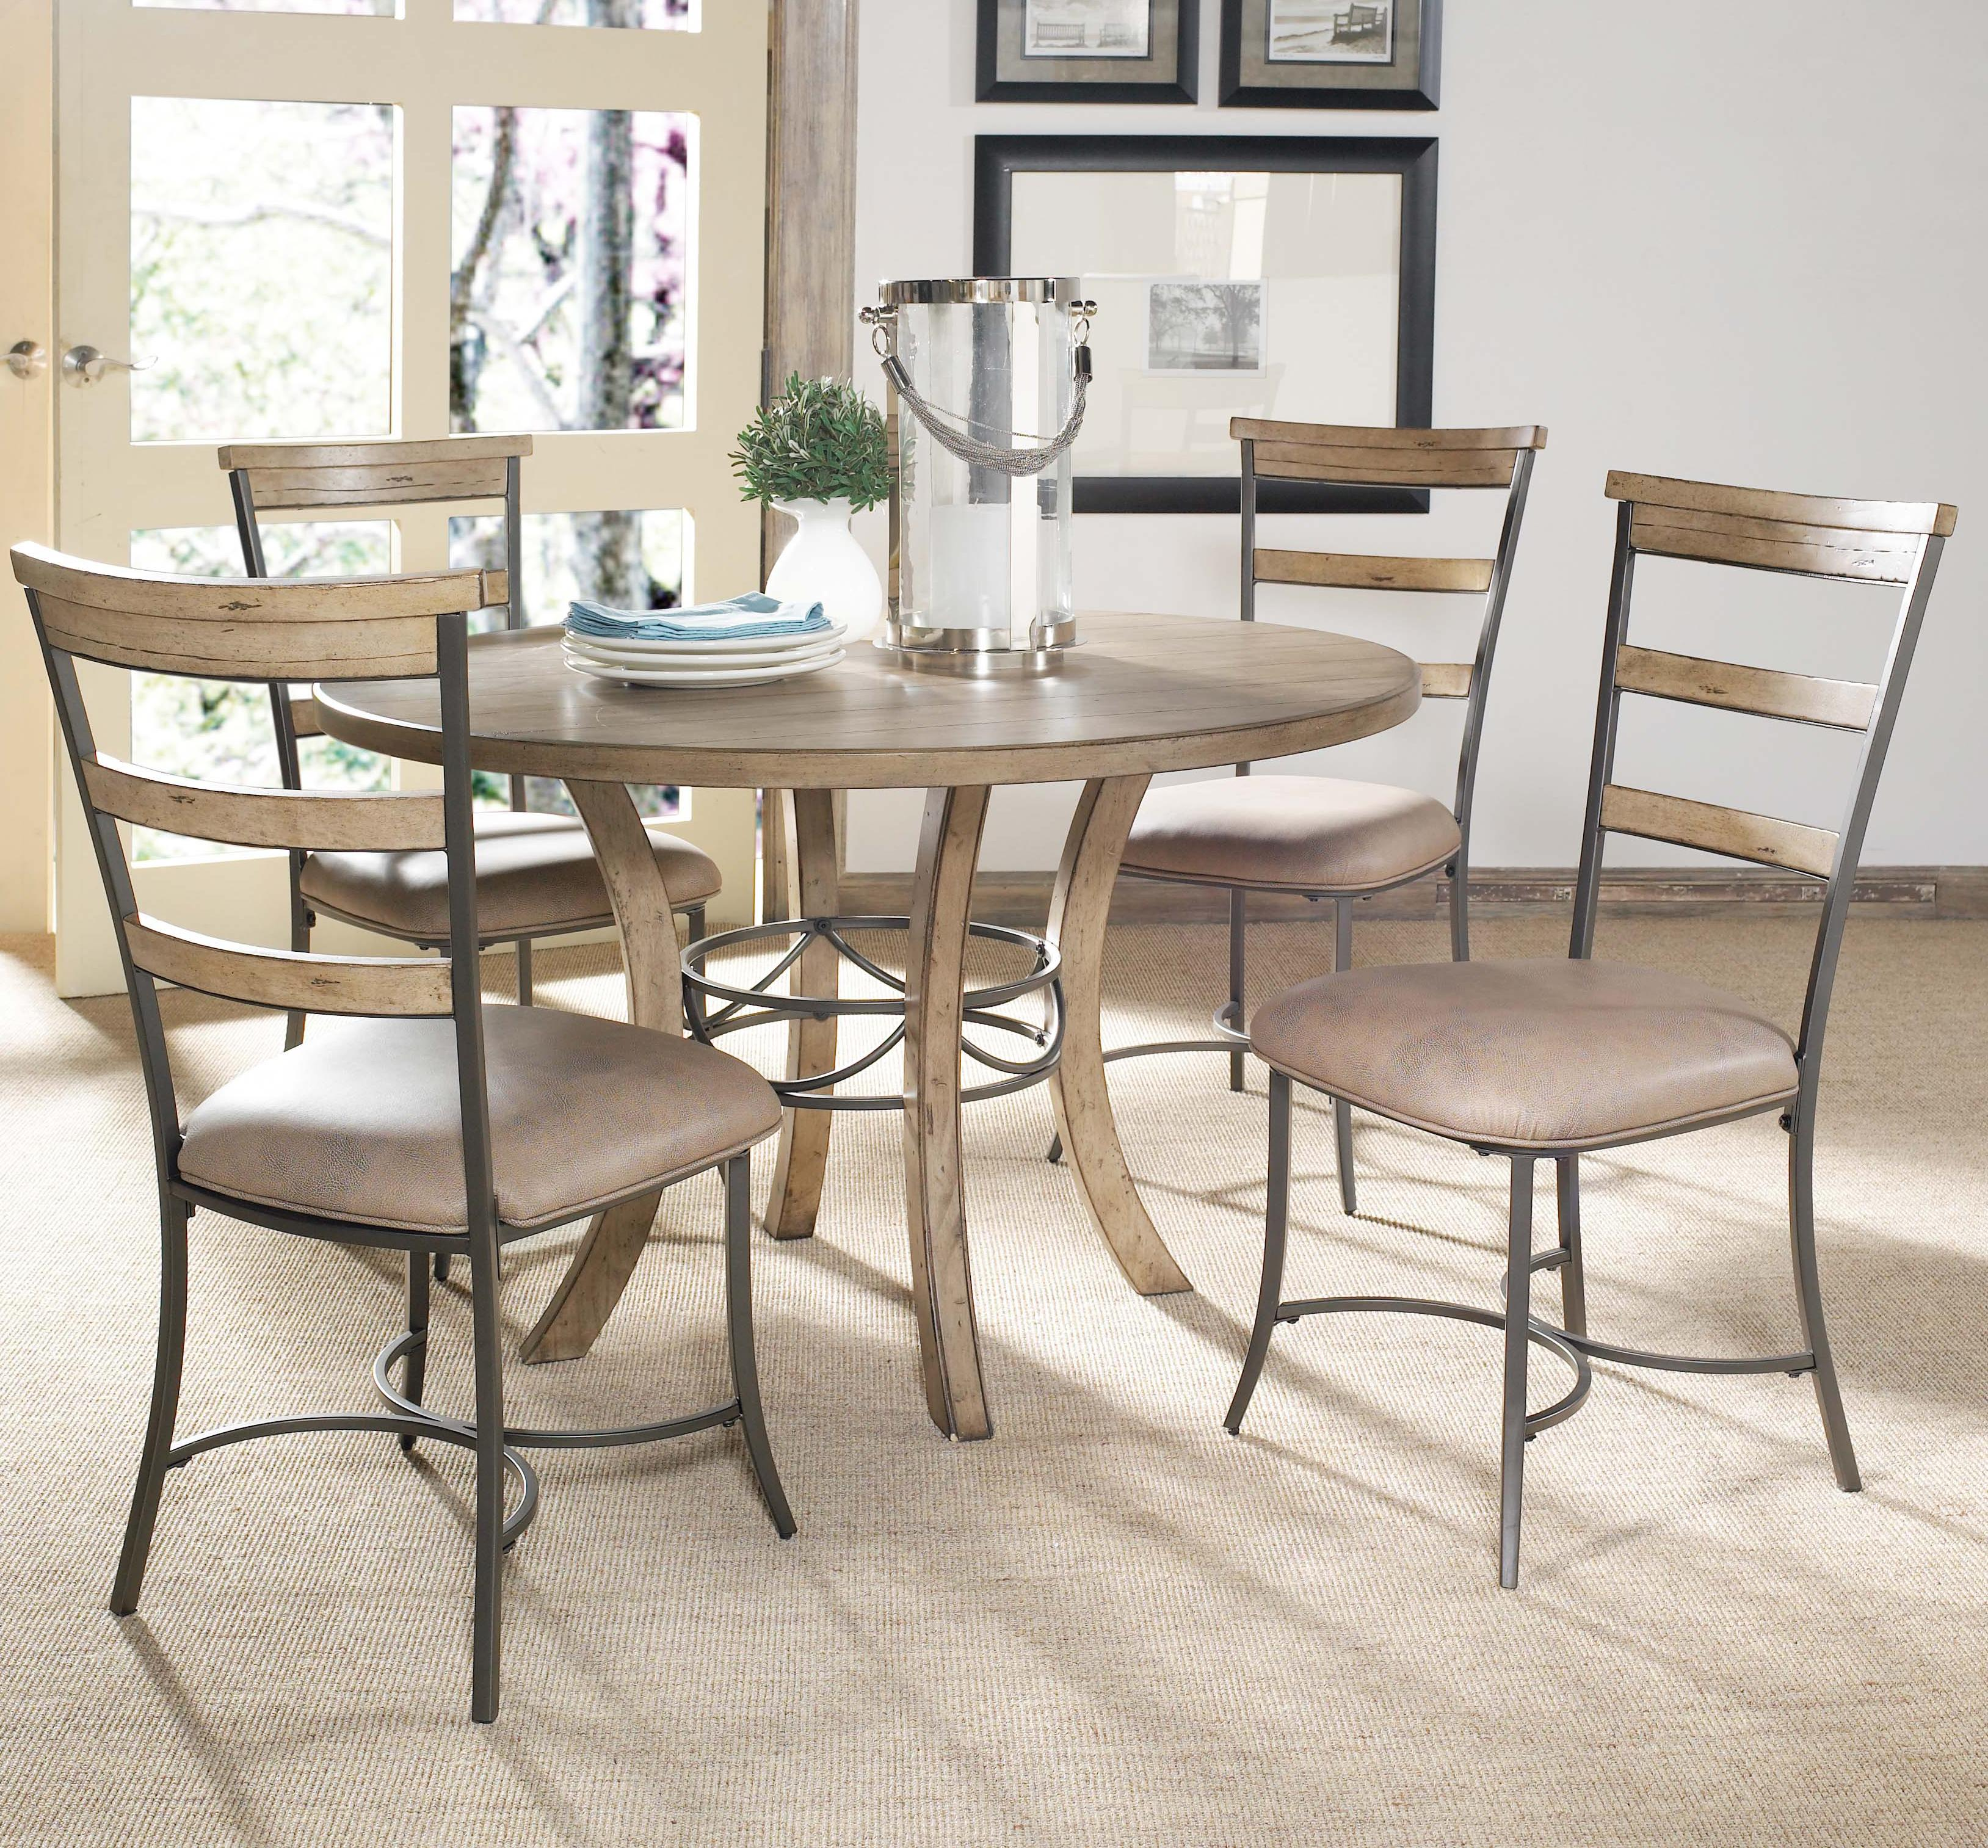 5 Piece Dining Table and Side Chair Set by Hillsdale